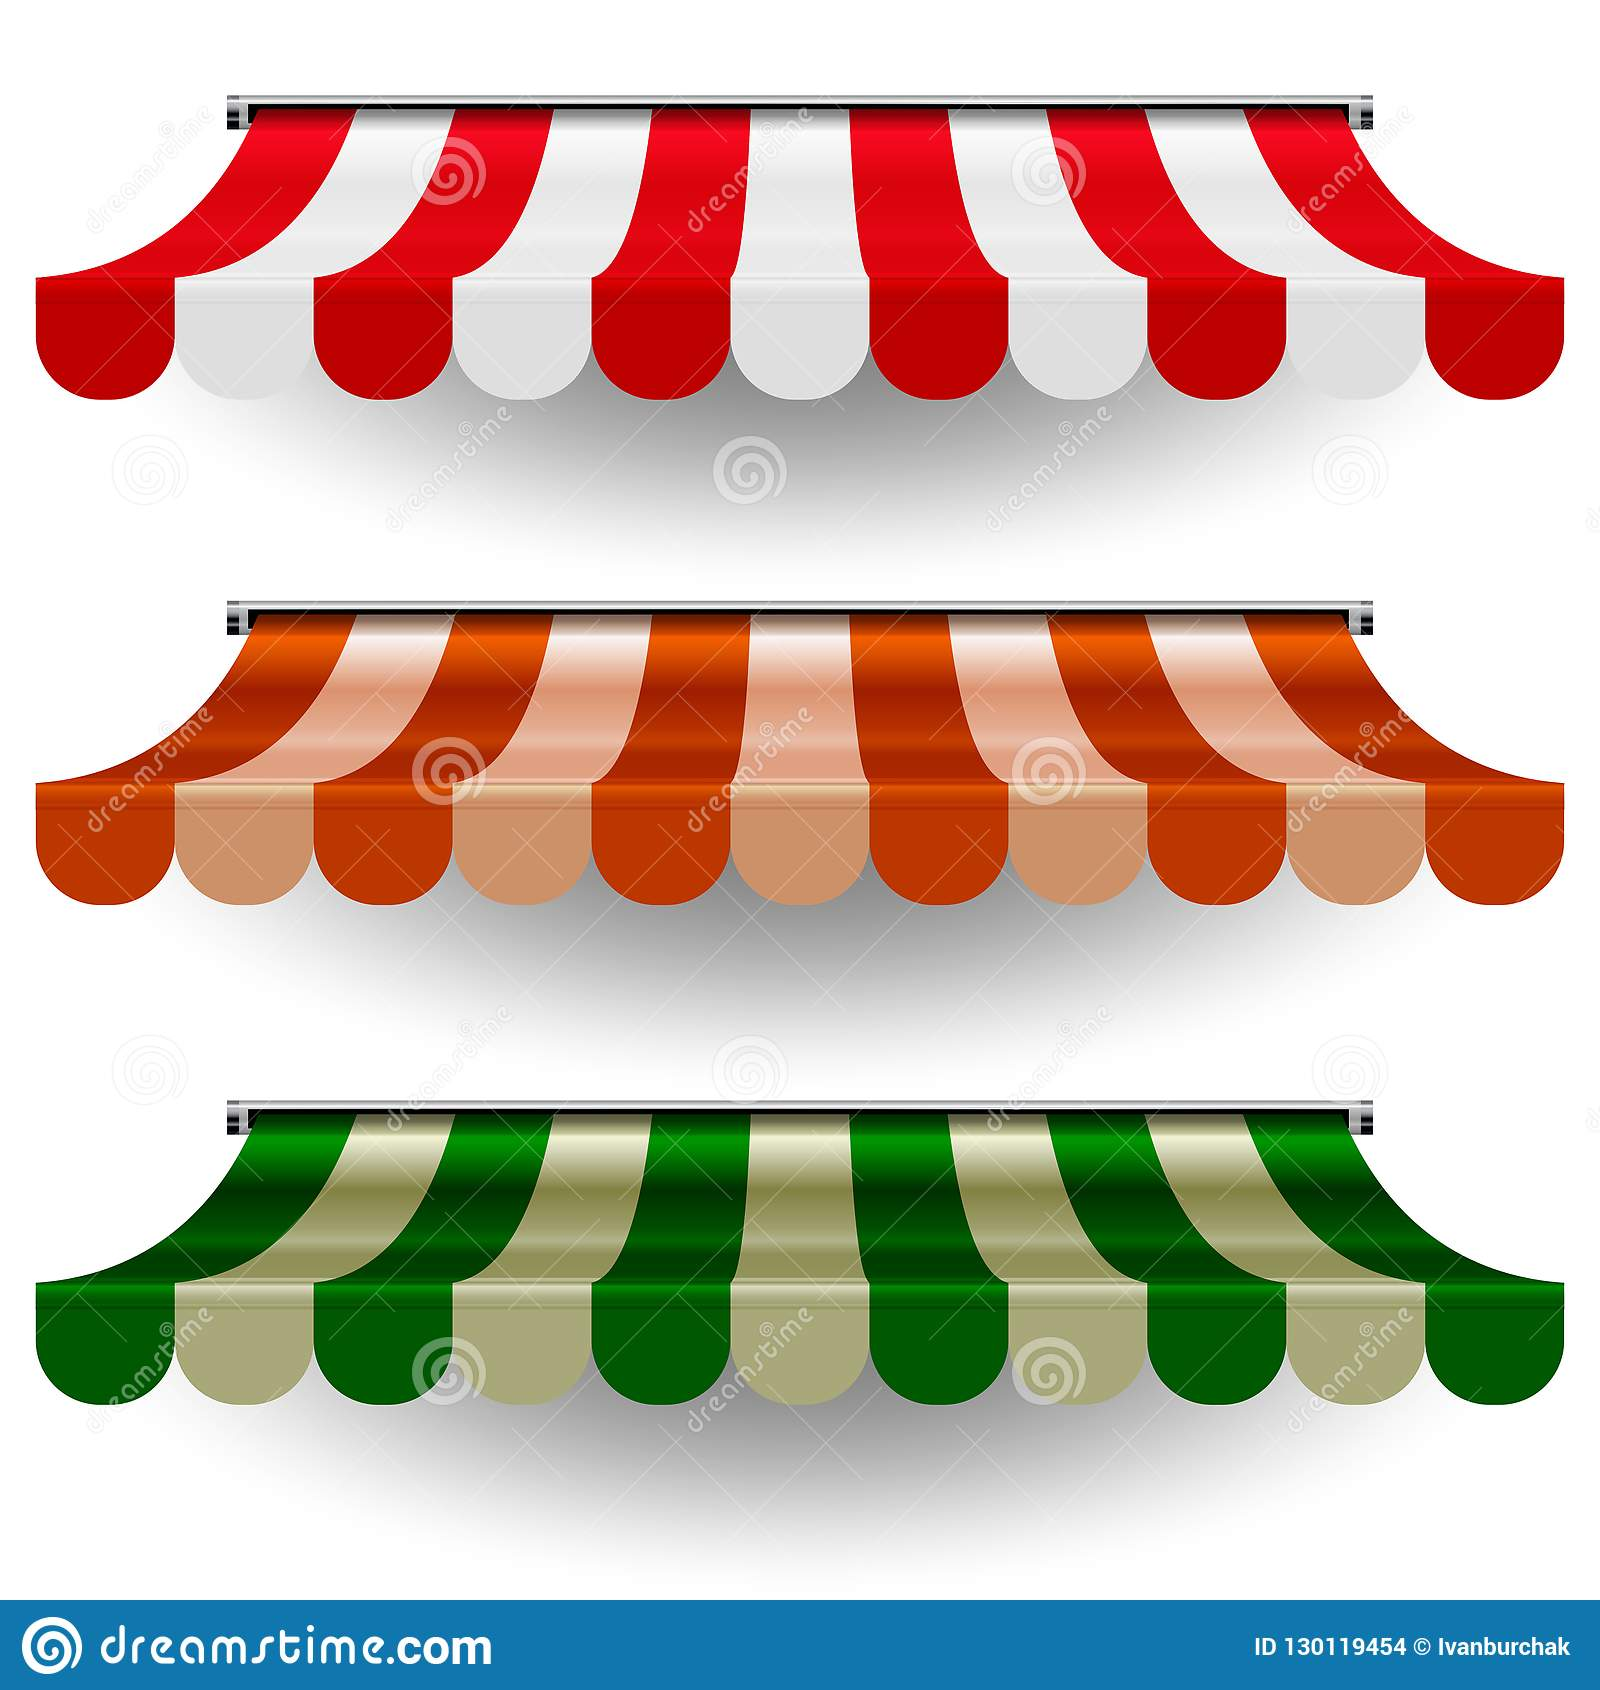 Commercial Canopy Awning Series Vector Pop Up Store Striped